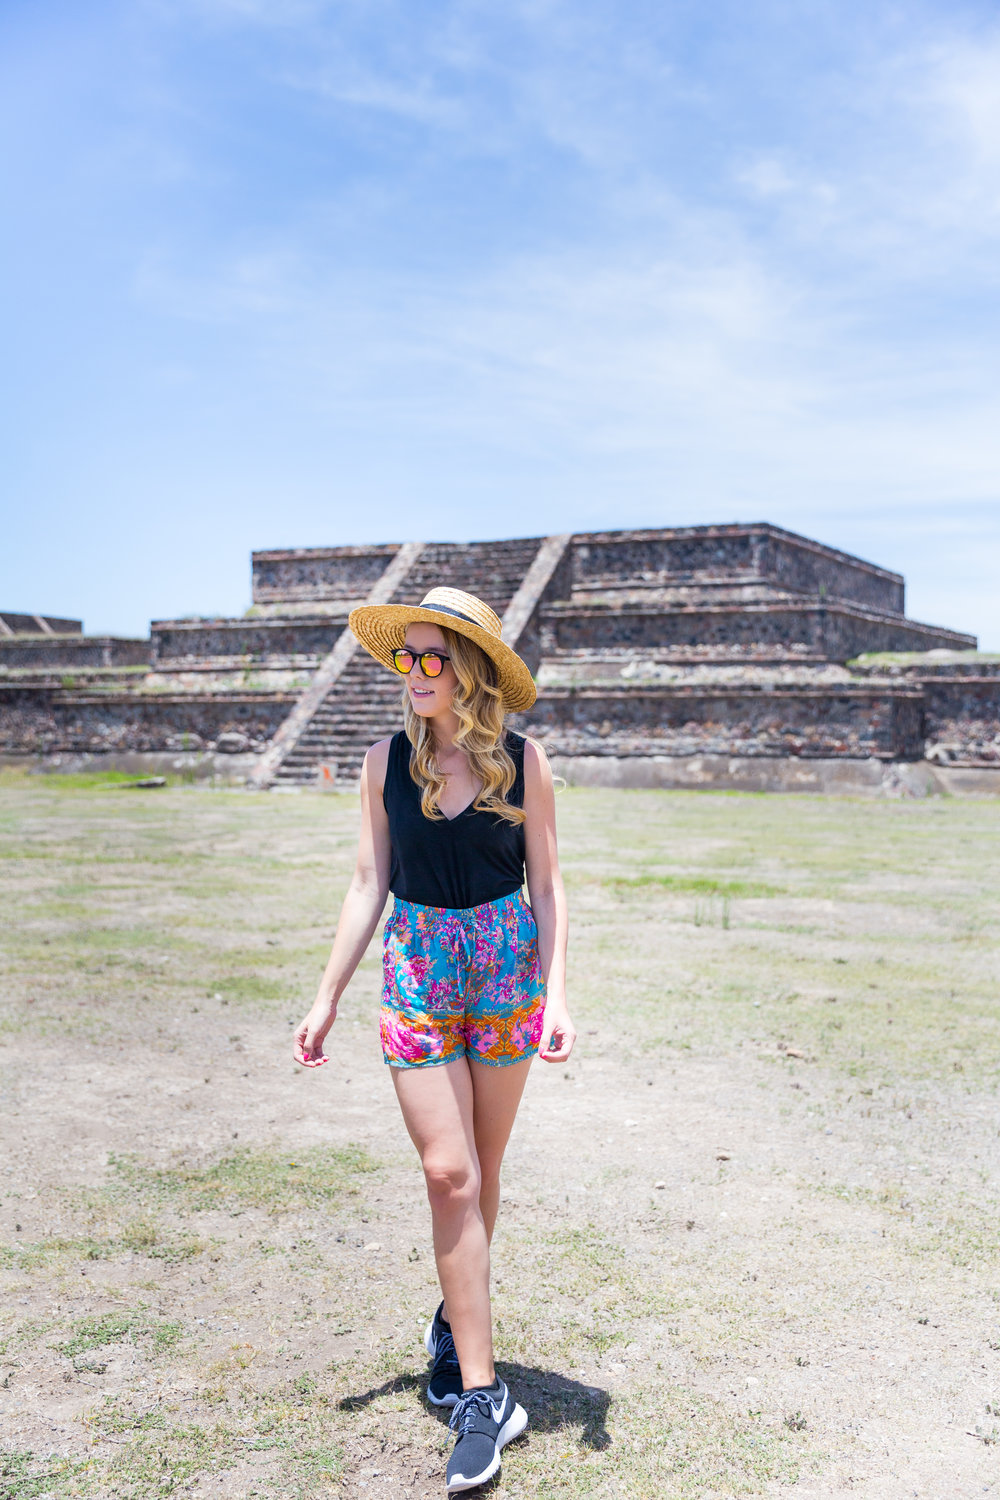 Mexico City Teotihuacan Pyramids Pattern Shorts Casual Summer Outfit-5.jpg